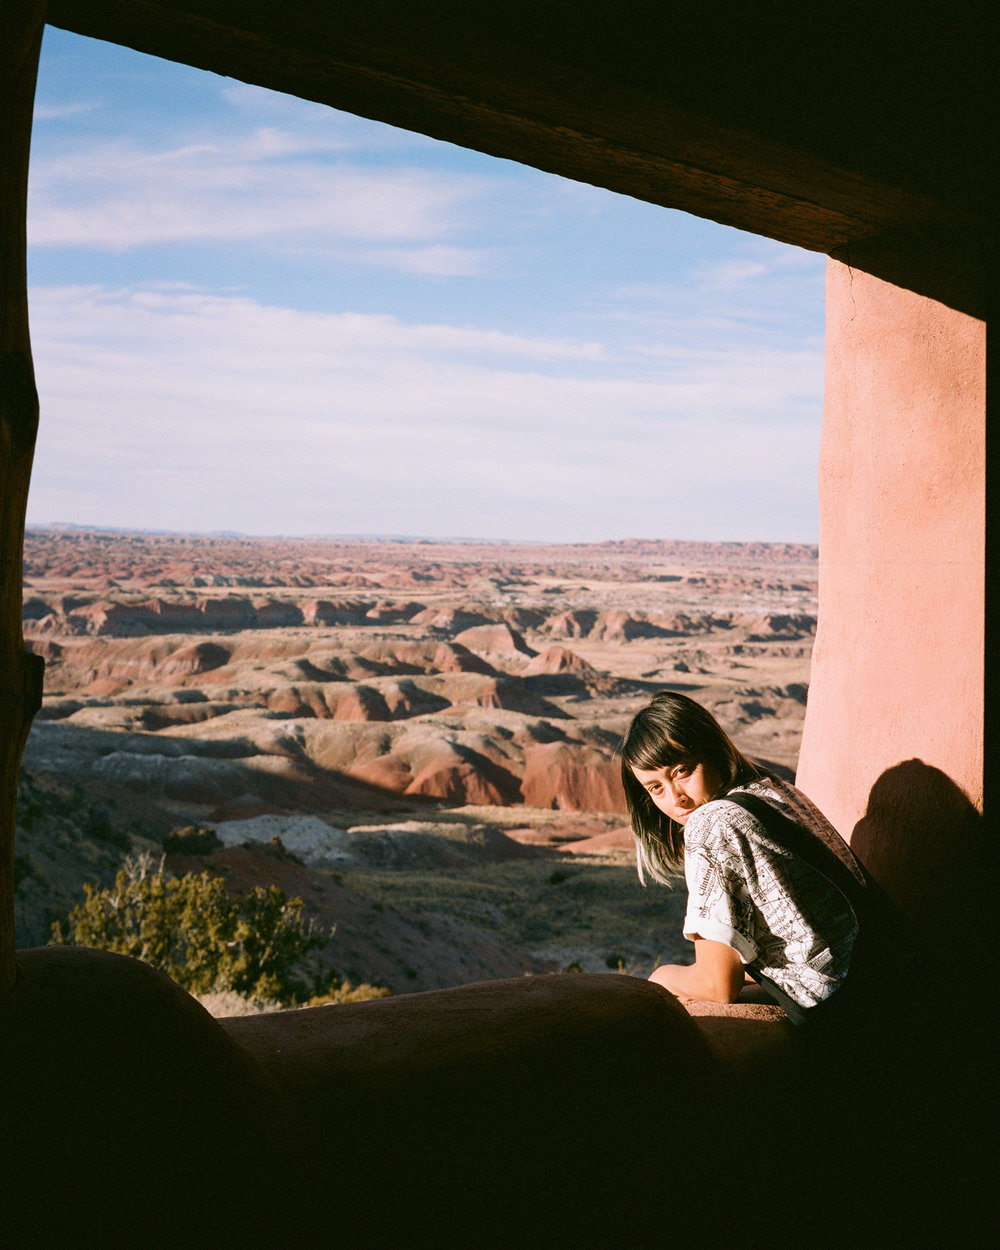 Overlooking the Painted Desert from the historic Painted Desert Inn.